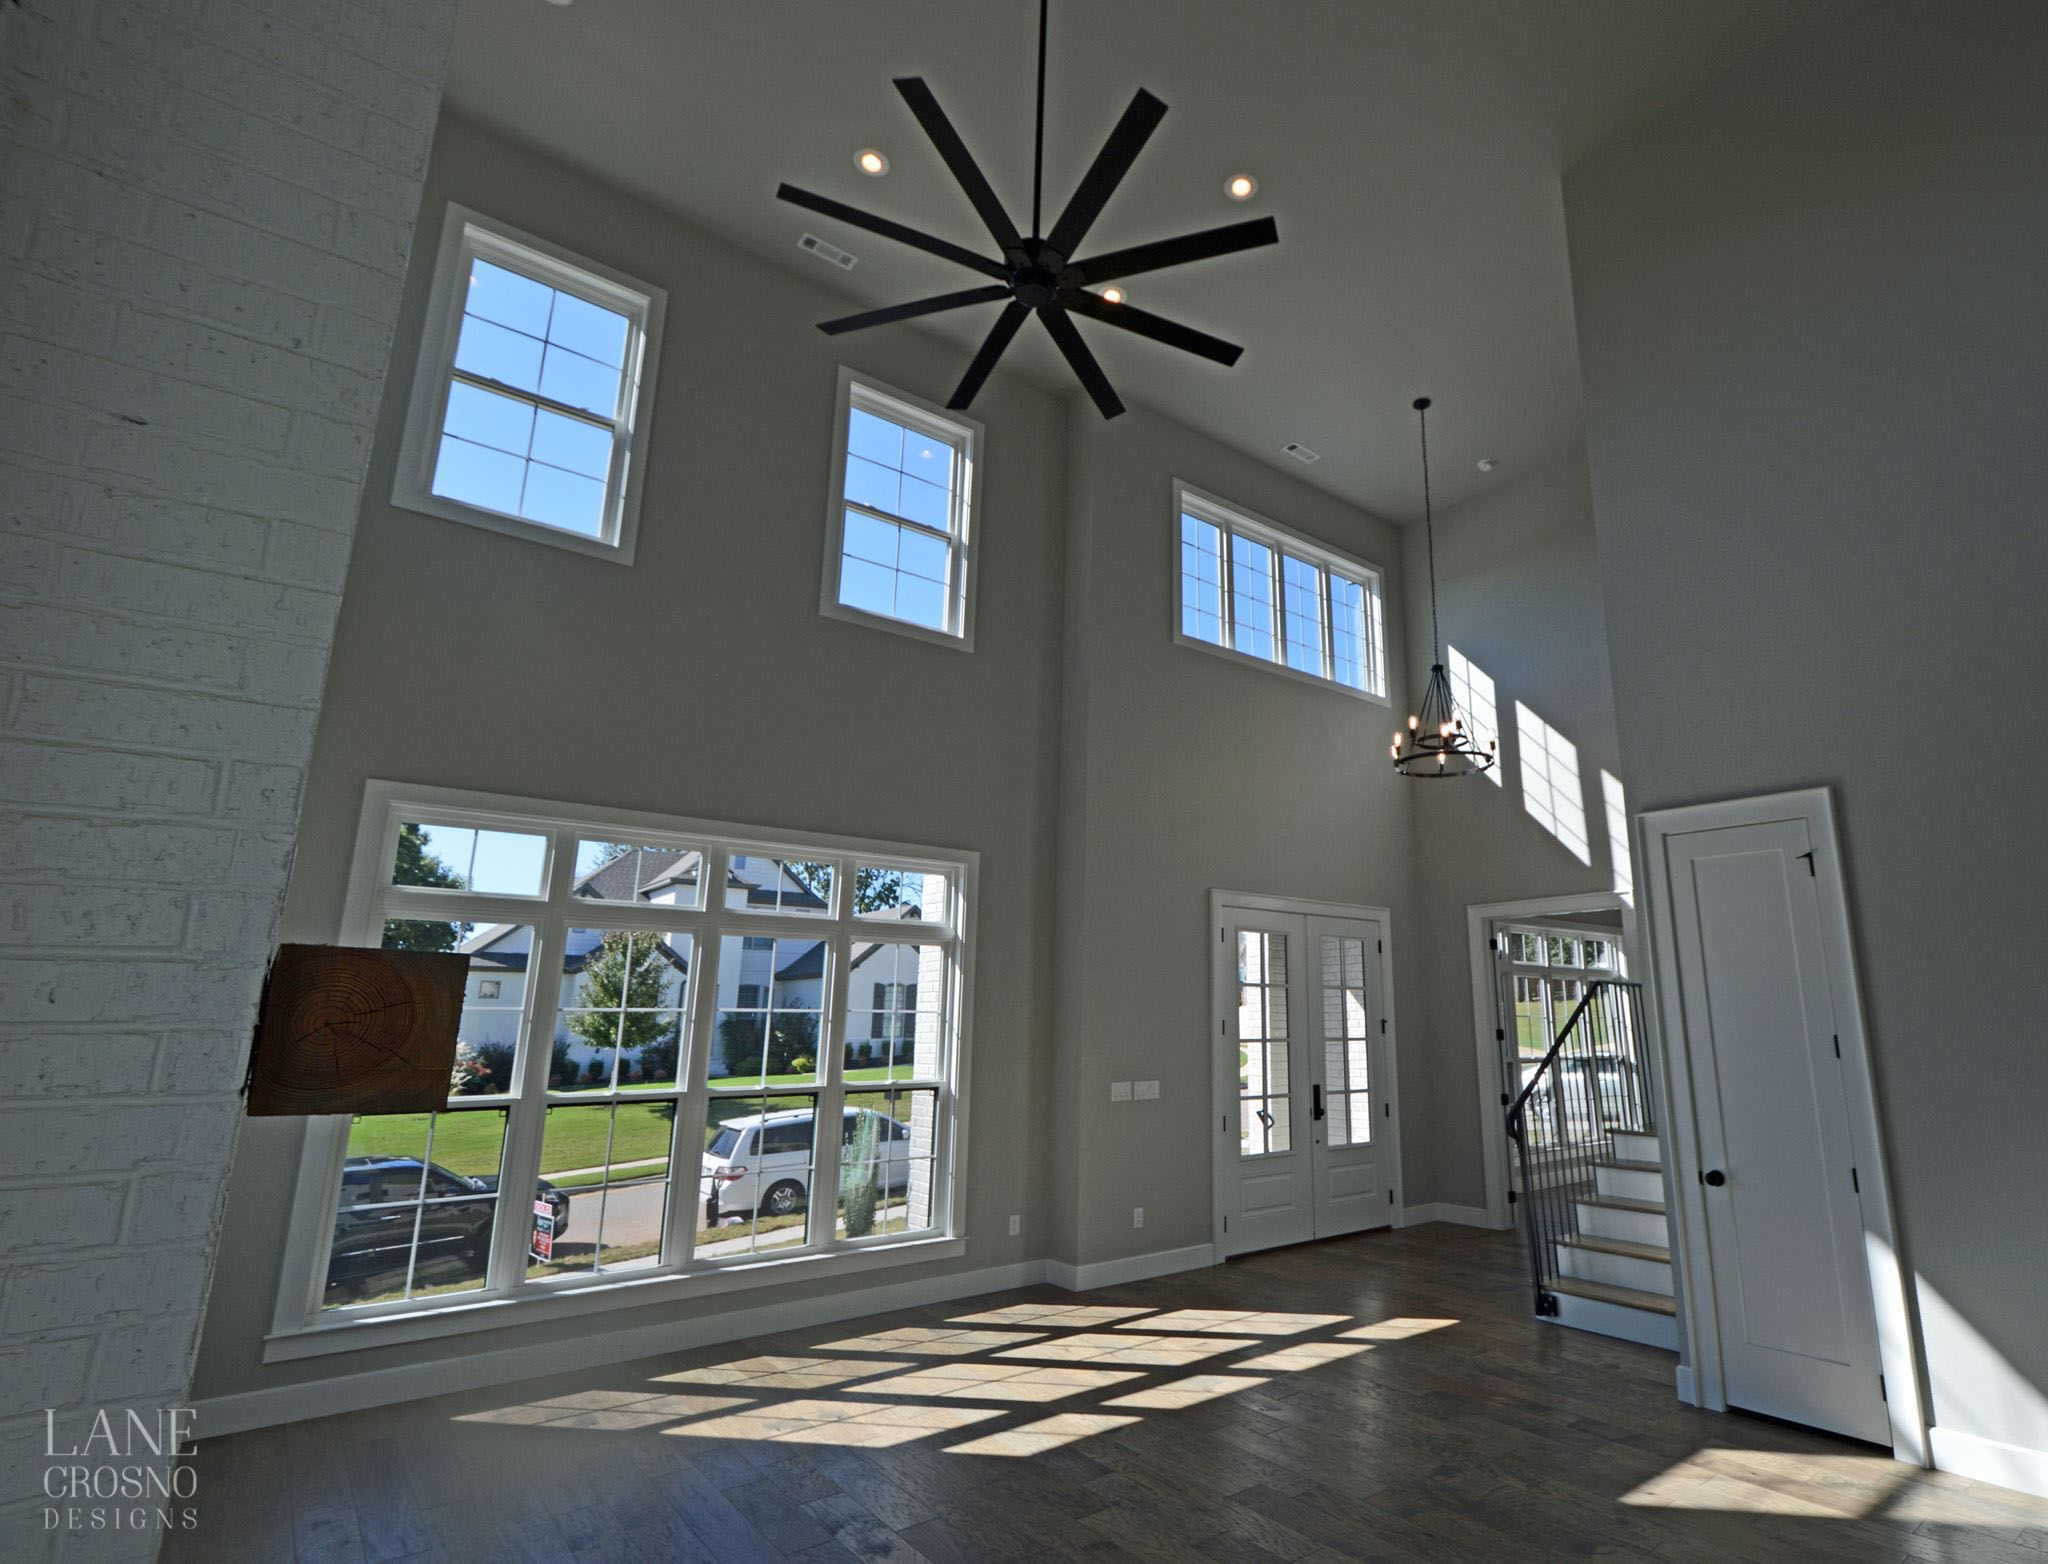 Contemporary Living Room Tall Ceilings Two Story Living Room 20 Foot Ceilings White Painted Brick House Design Living Room Windows Contemporary Living Room #tall #ceiling #living #room